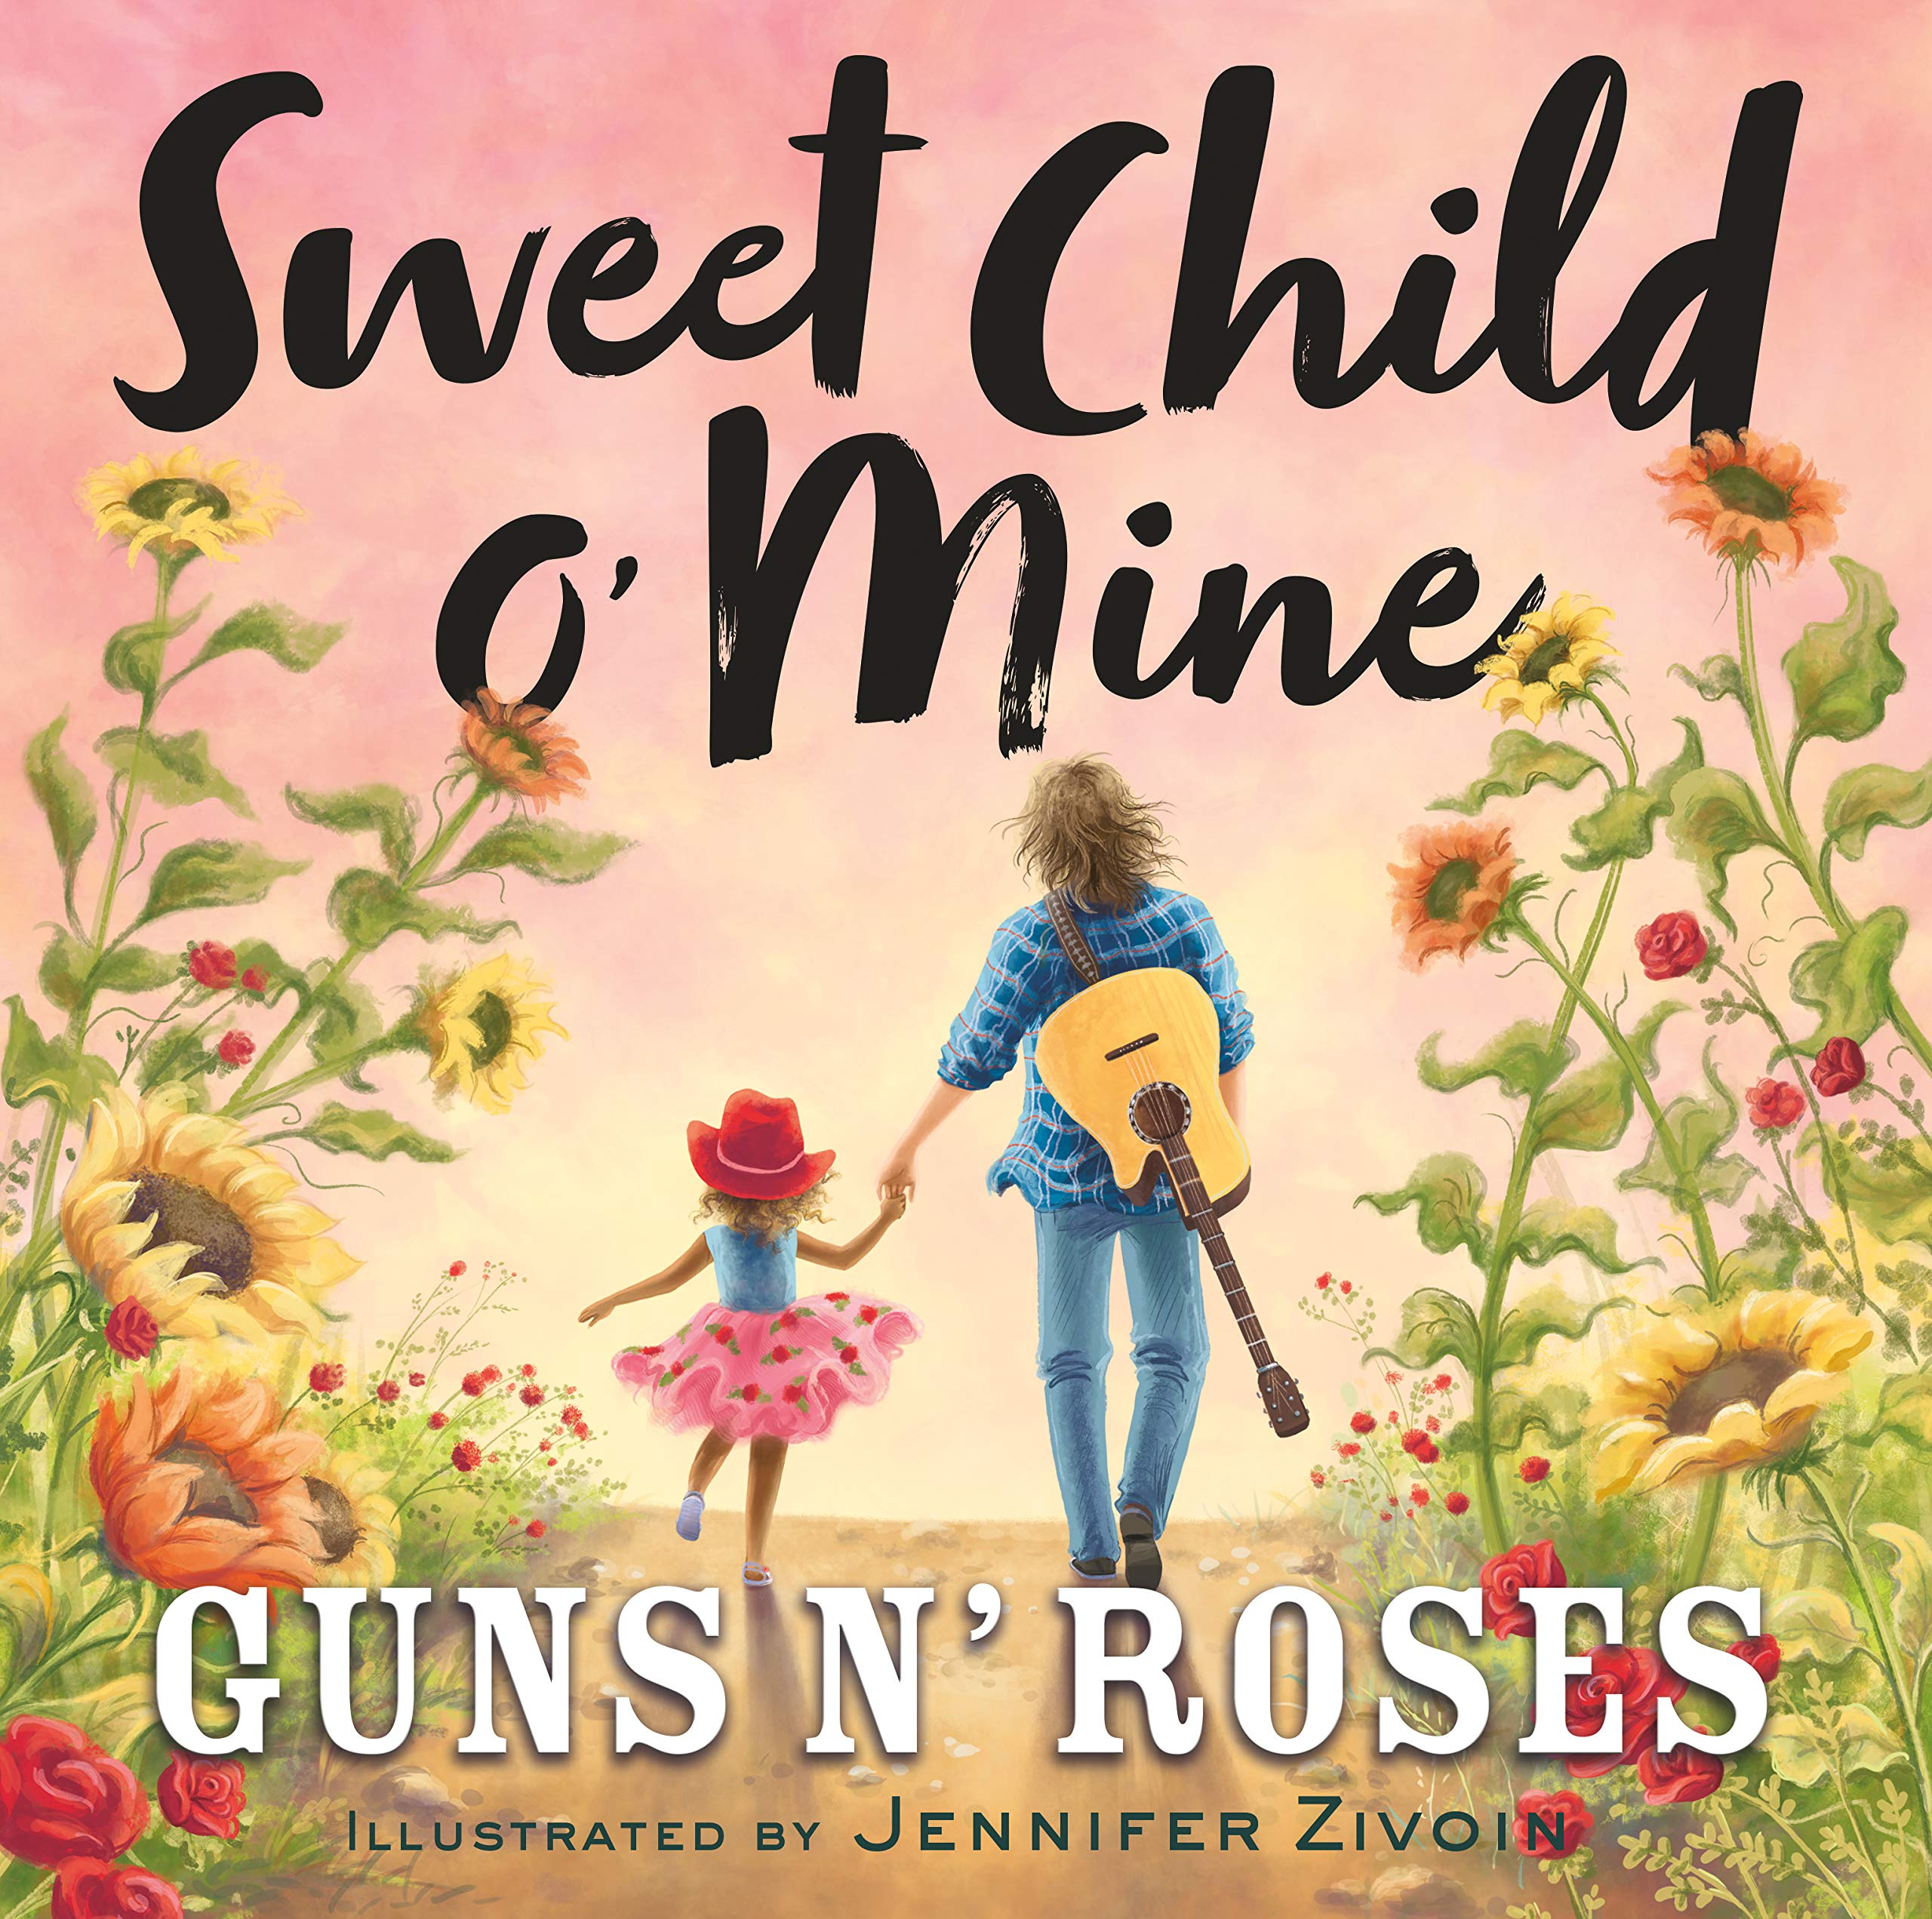 Just Announced: Guns 'N Roses Children's Book